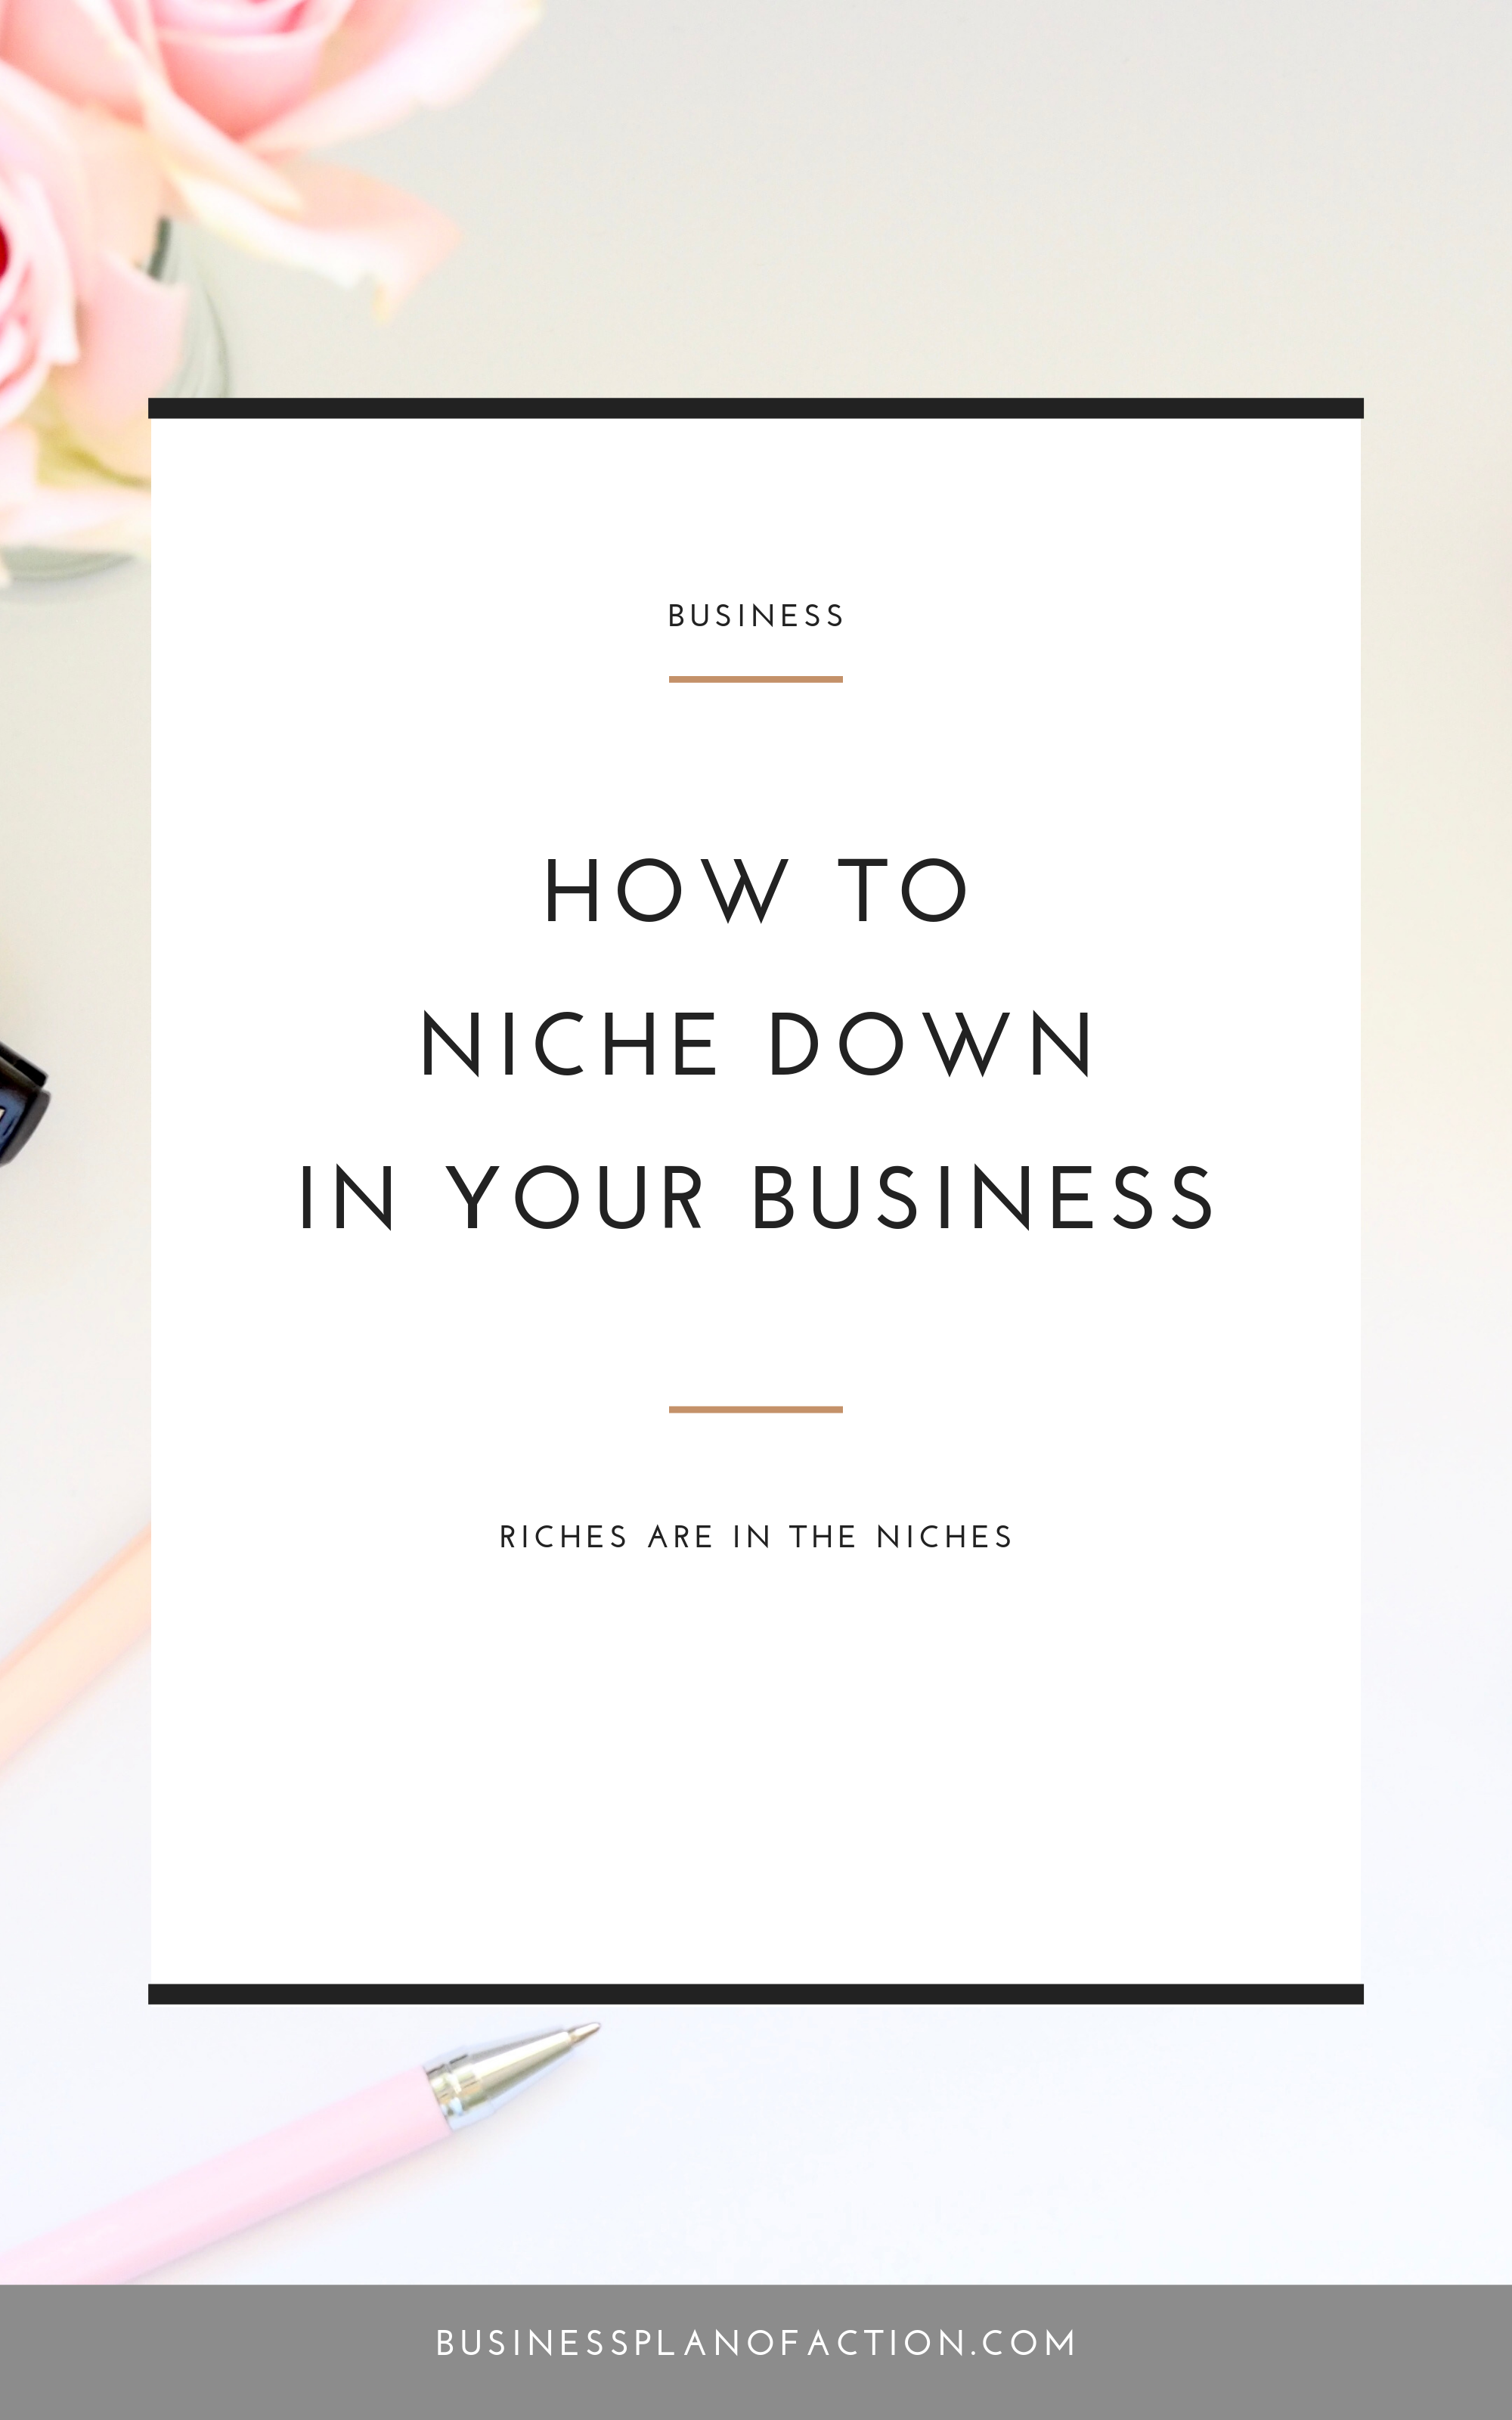 Everyone tells you to niche down, but to you it feels like you're saying no to people. The truth is, you'll be able to say yes to more business as you niche--and make more money!